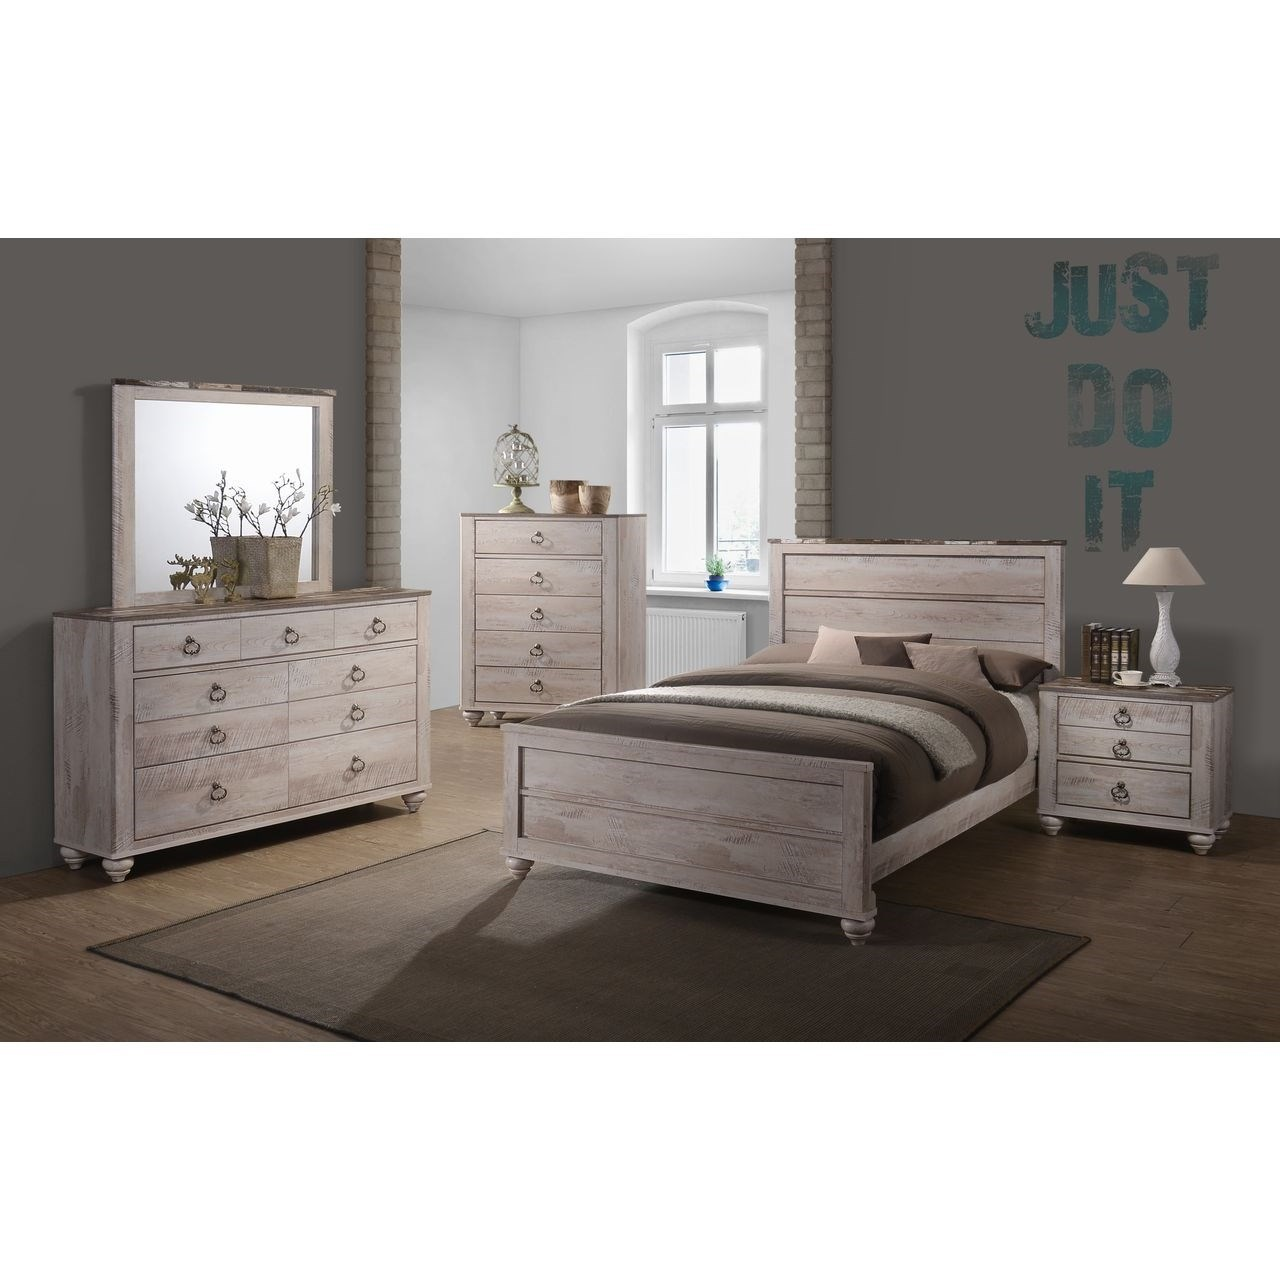 C7302A Queen Bedroom Group by Lifestyle at Furniture Fair - North Carolina